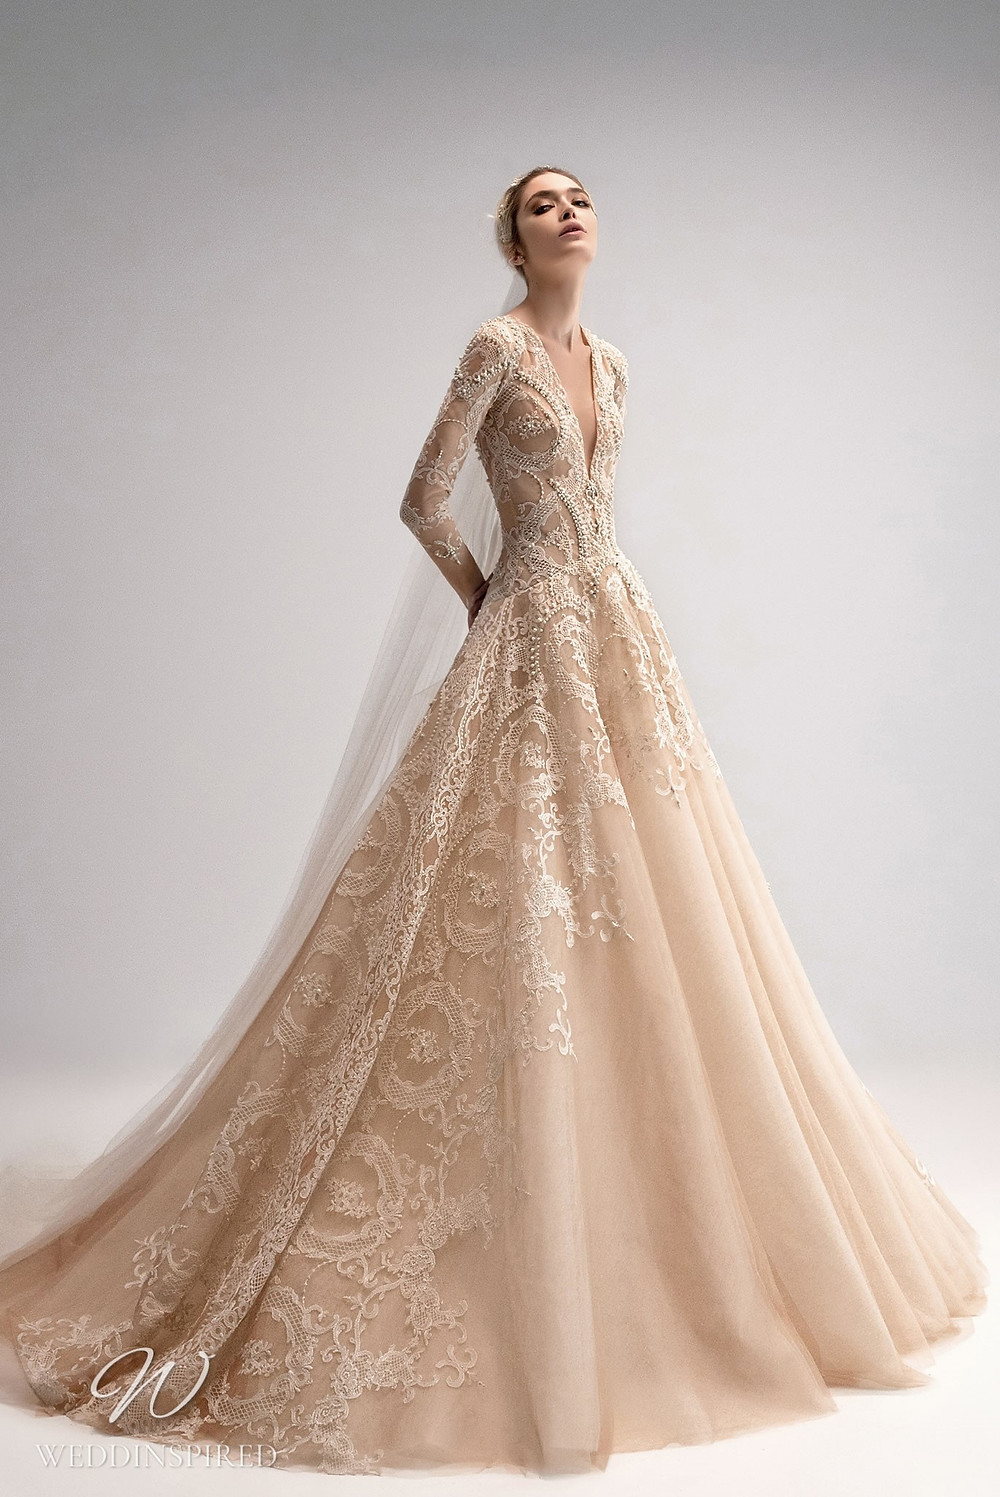 An Ersa Atelier 2021 blush chiffon ball gown wedding dress with lace, long sleeves and beading